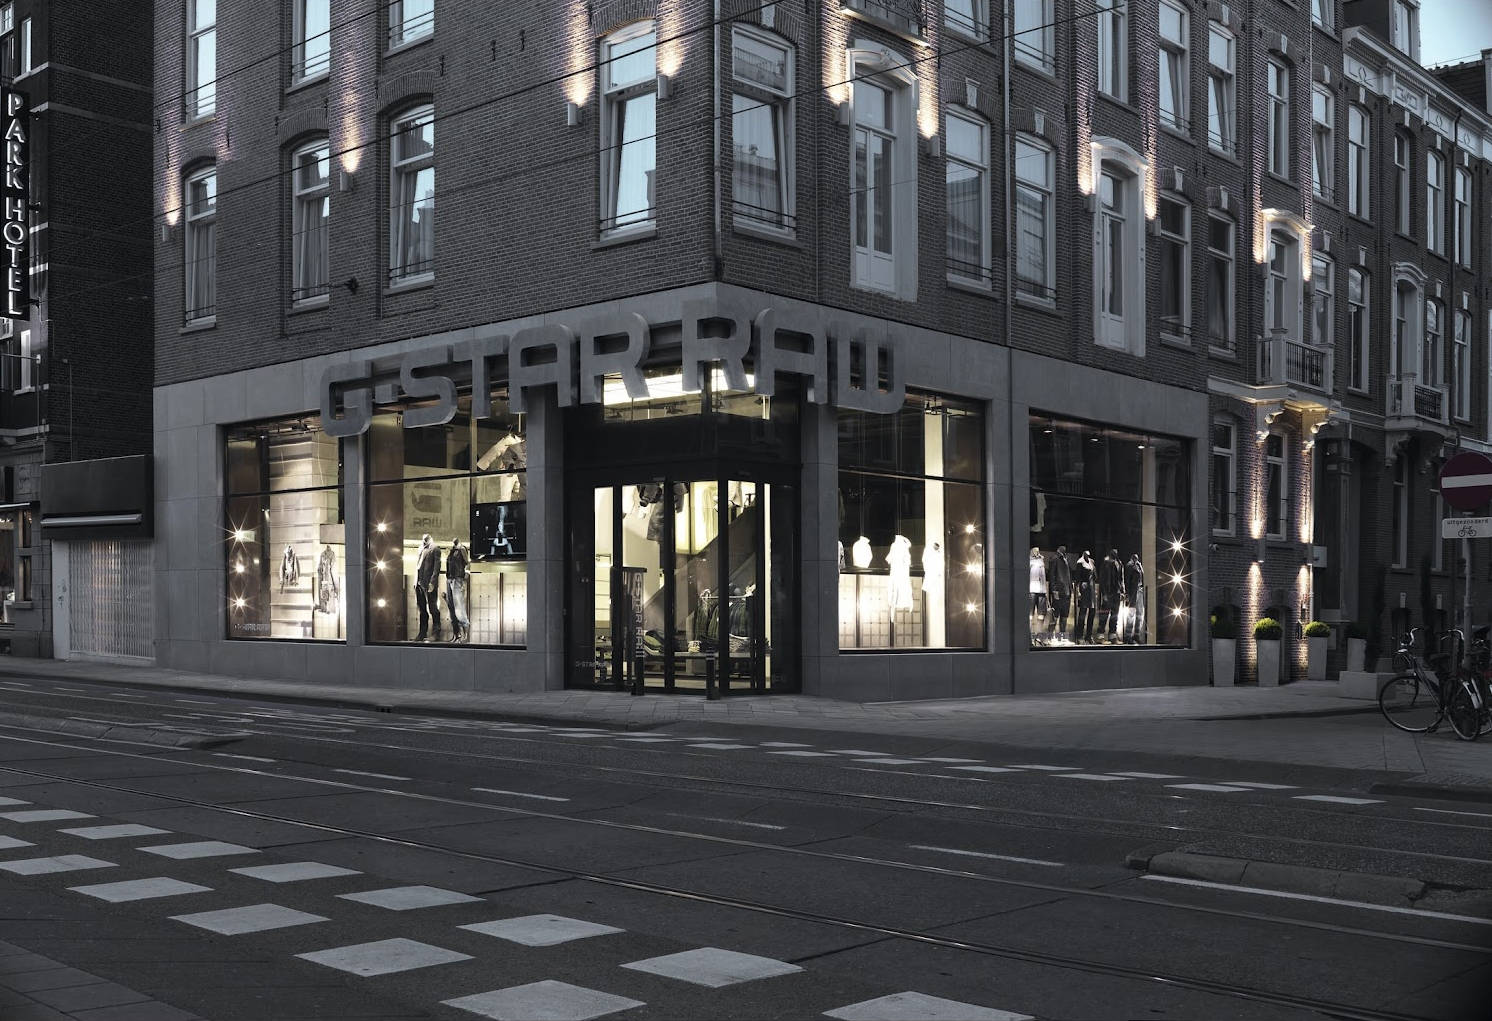 G-star raw pc hooftstraat store design